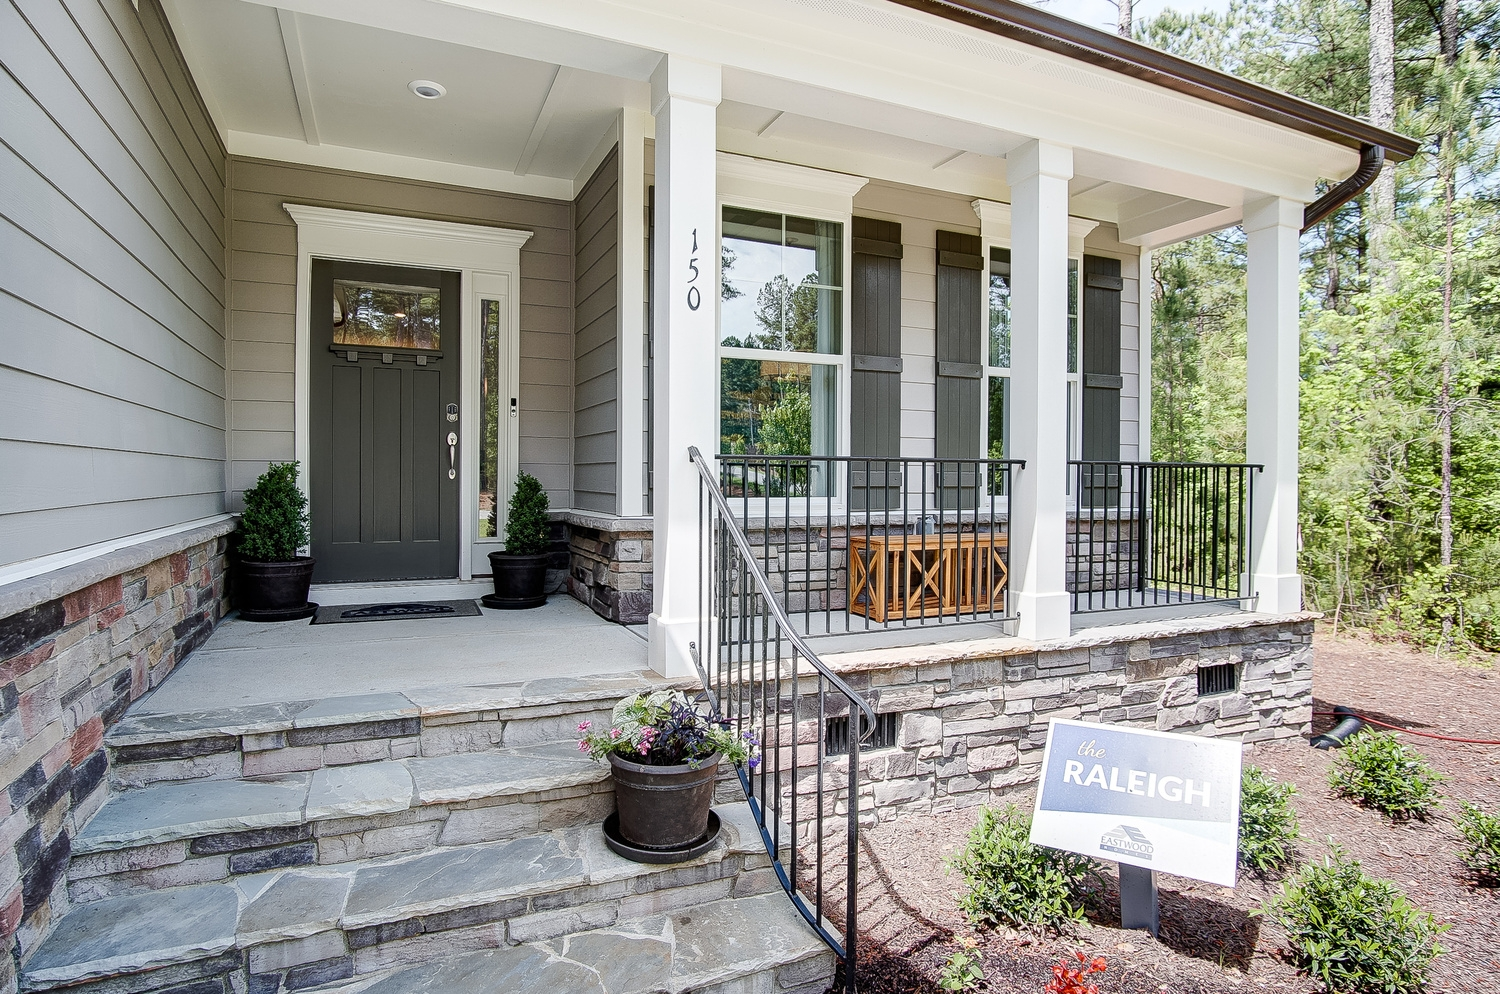 Raleigh Front Porch